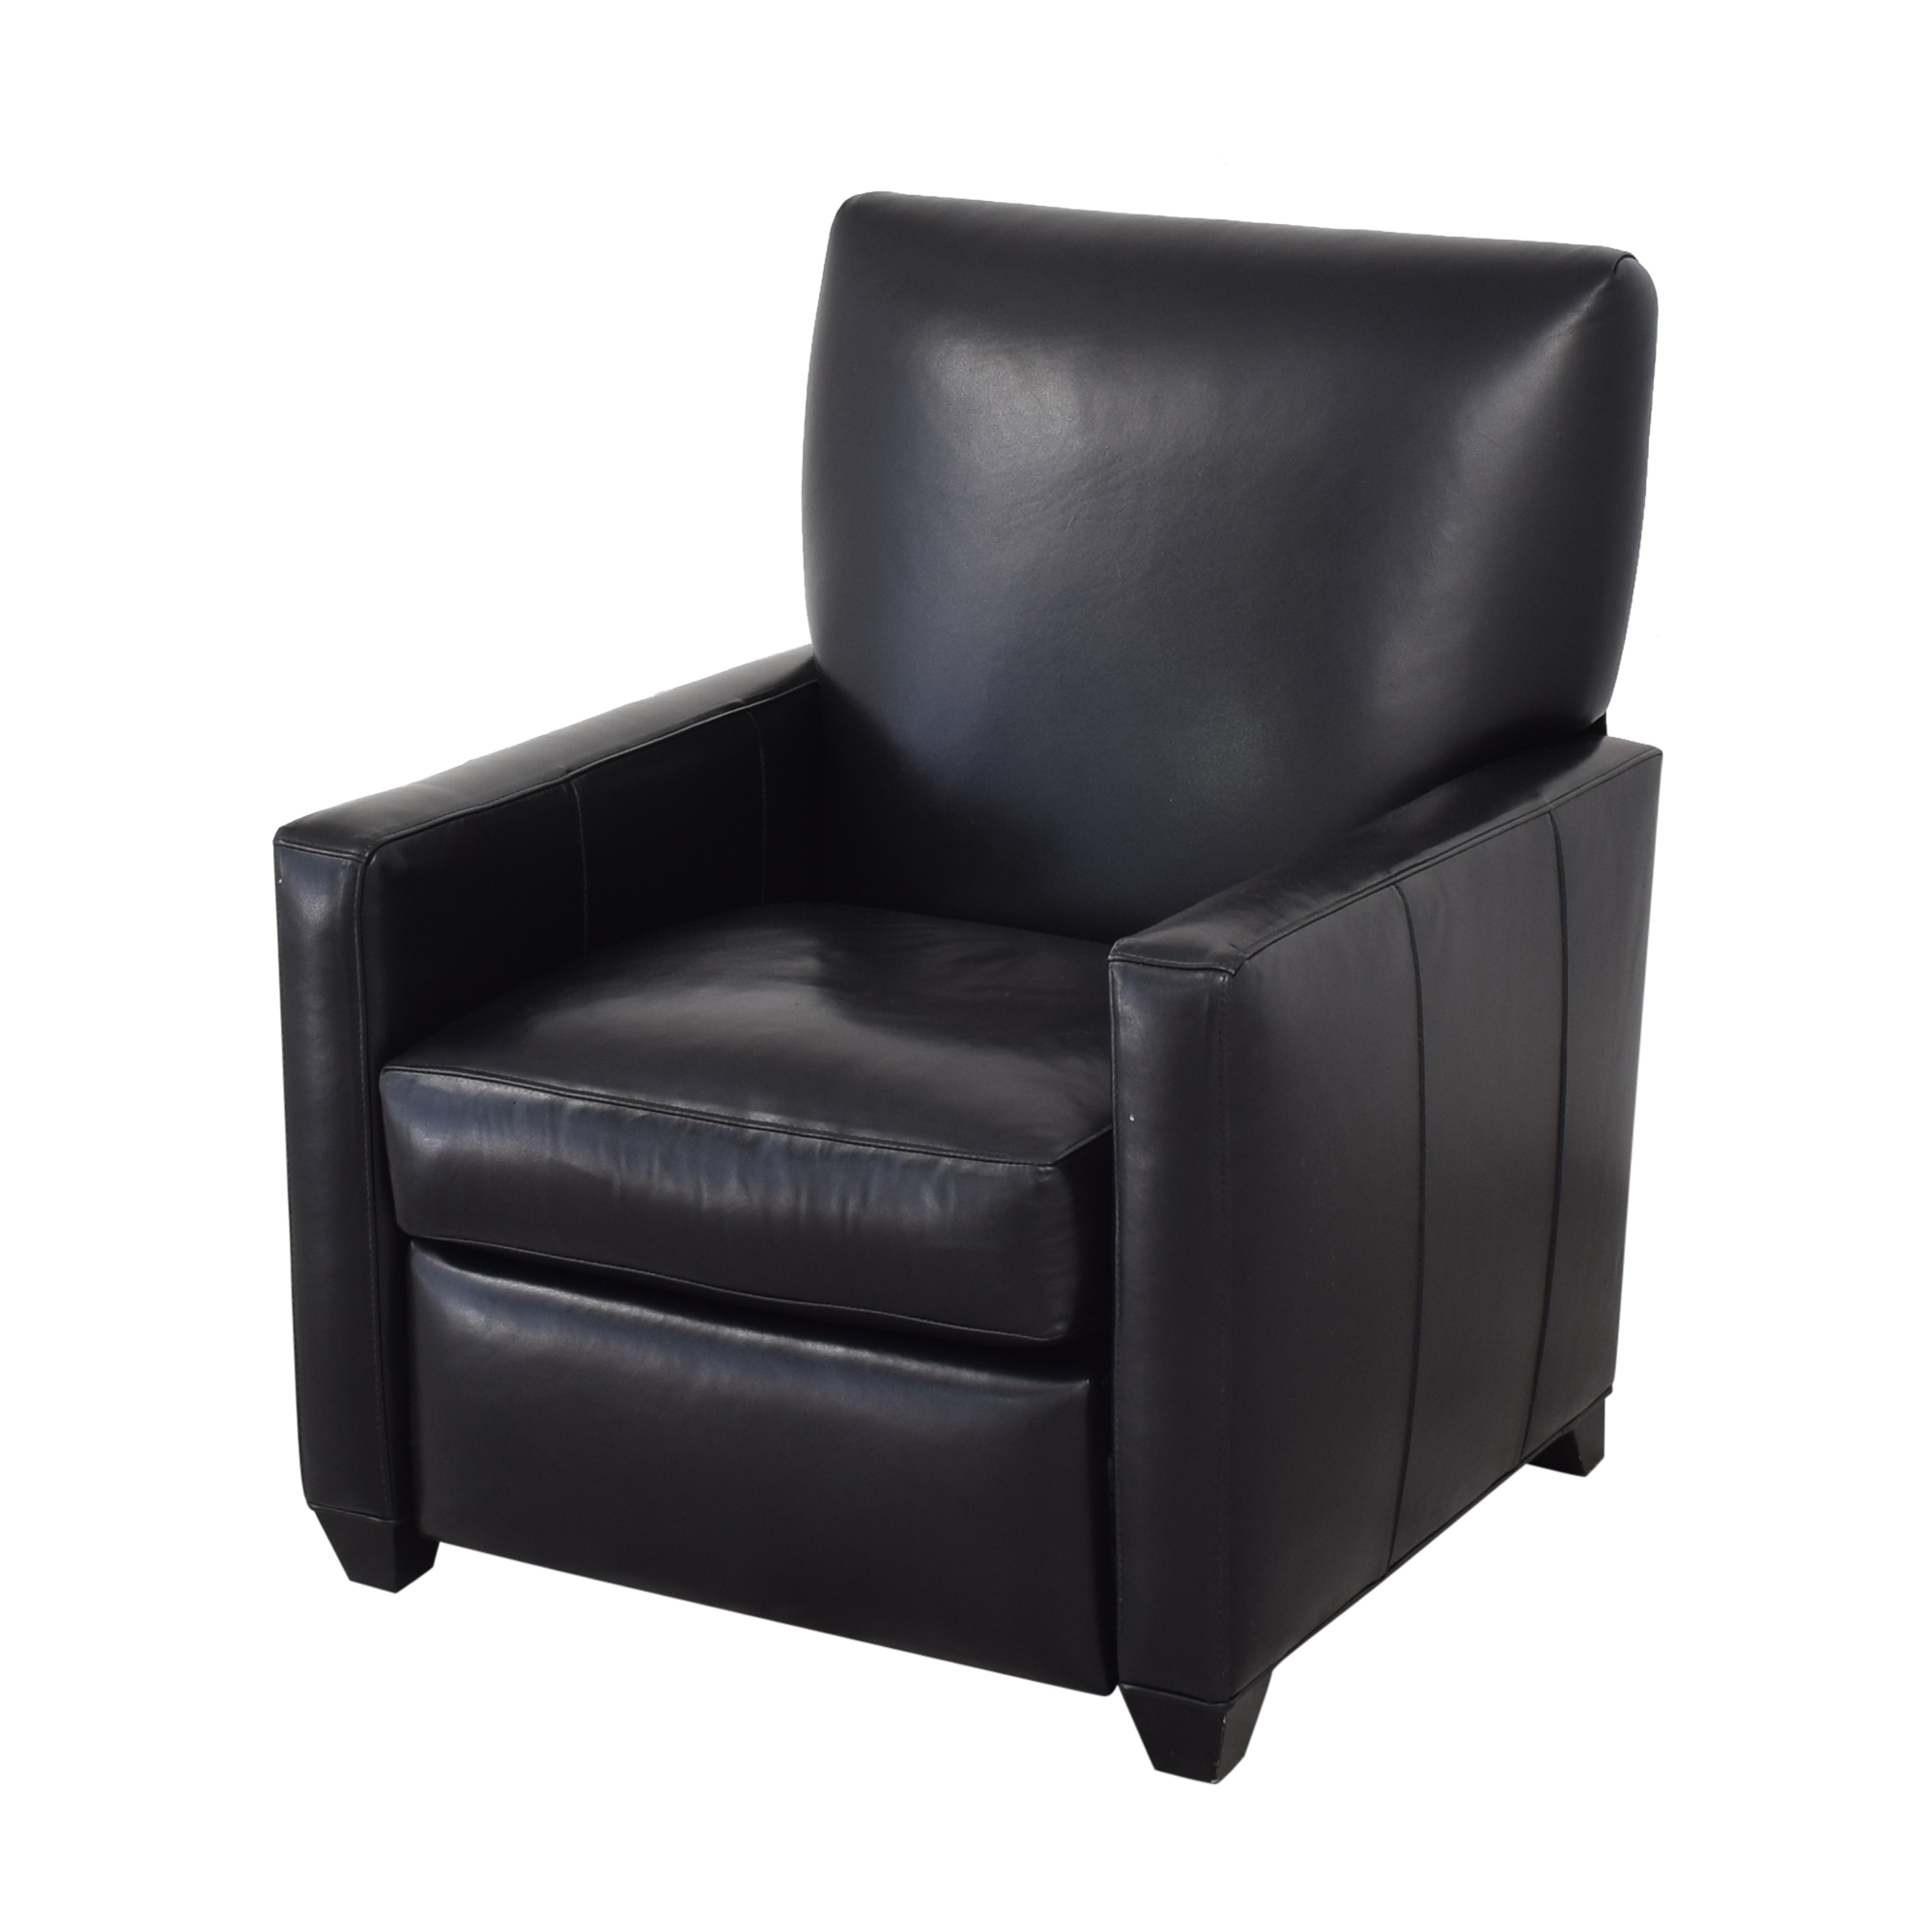 Crate & Barrel Tracy Leather Recliner / Recliners